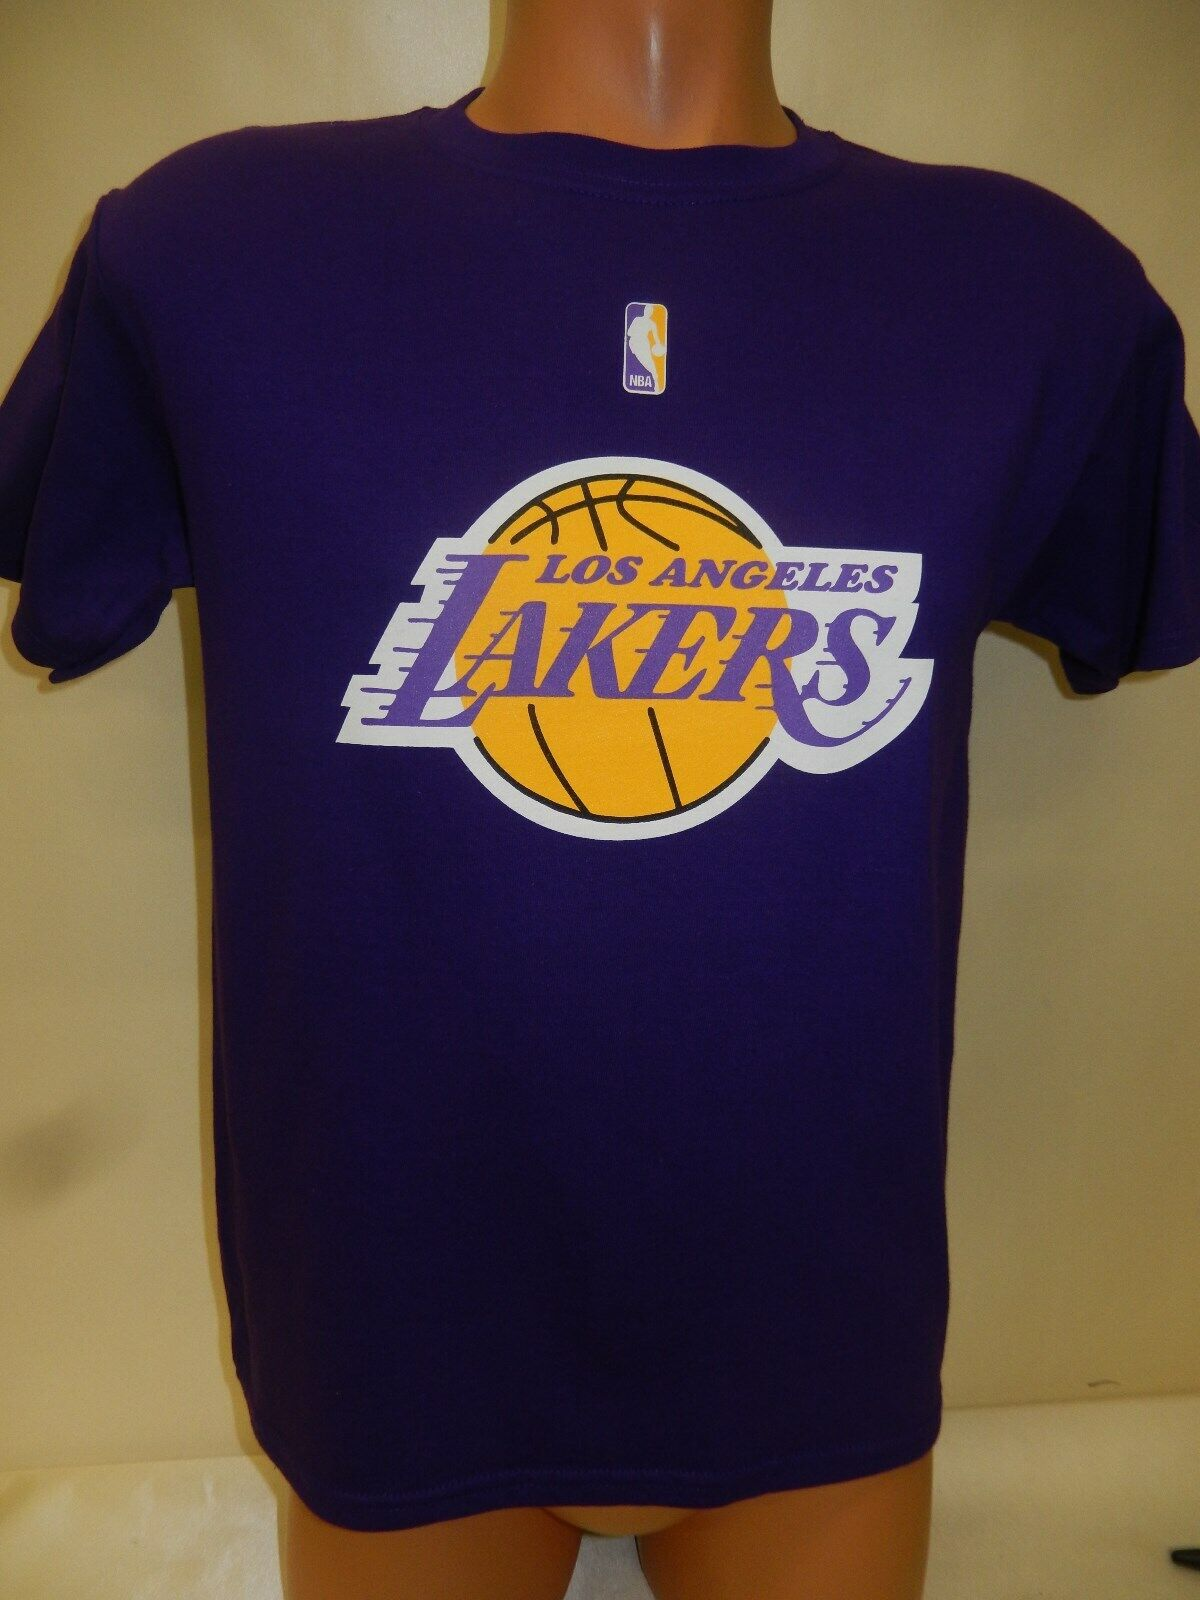 0730 boys youth apparel los angeles lakers